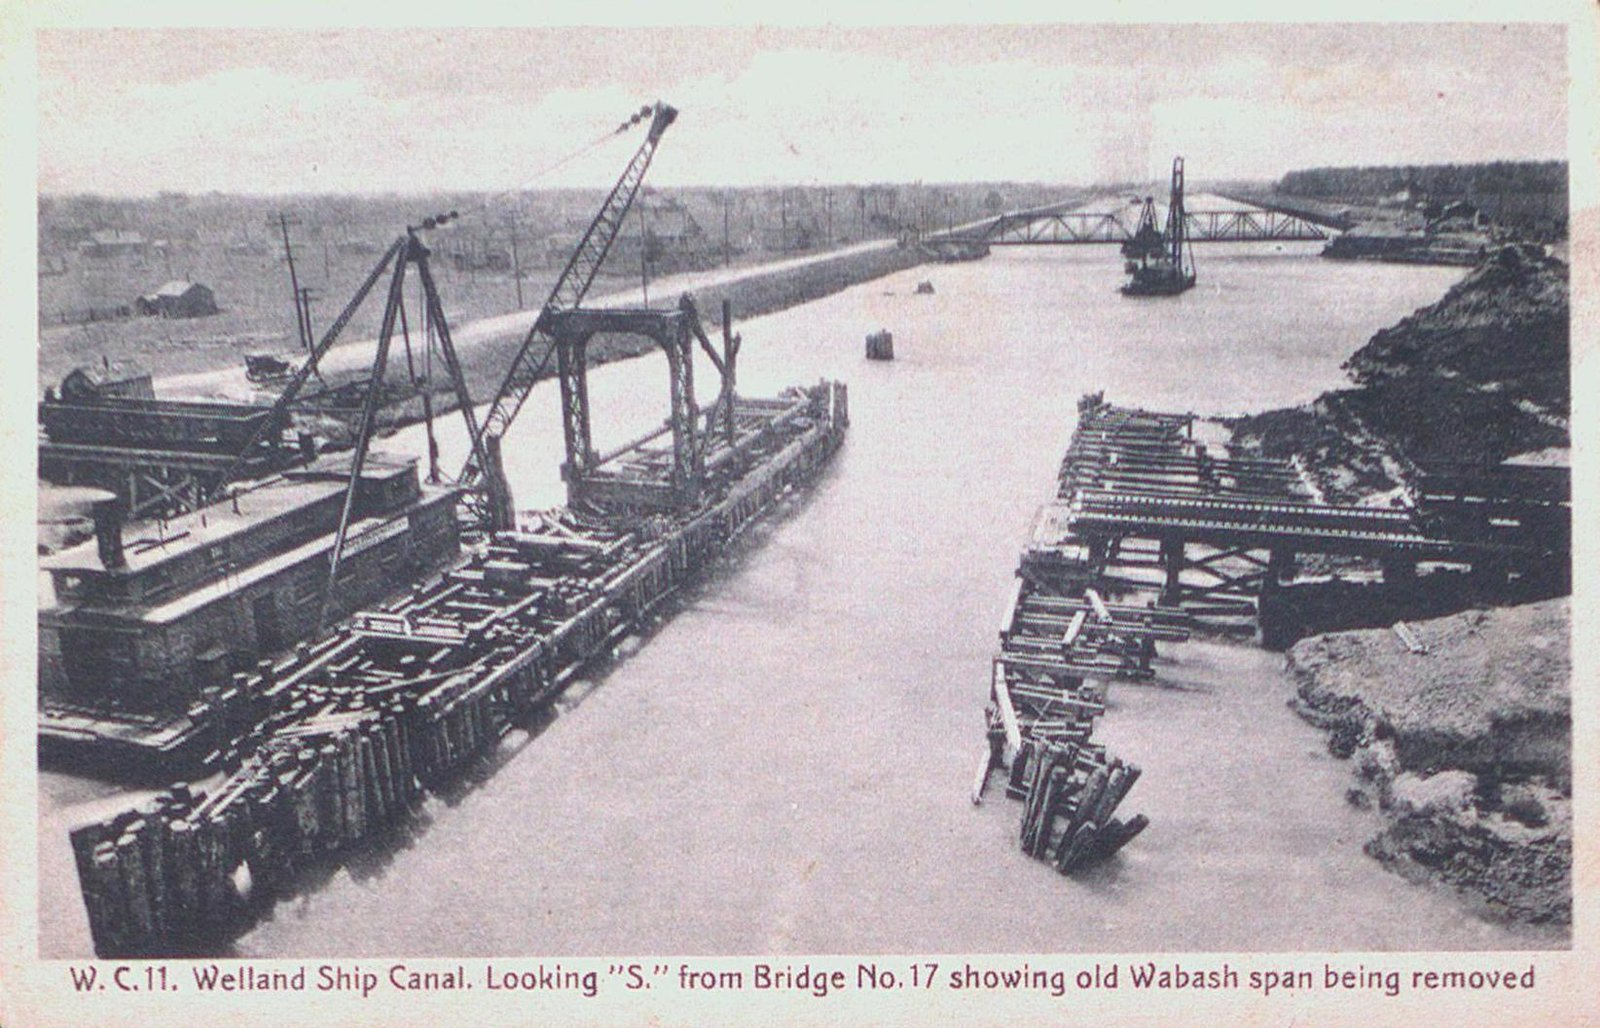 Old Wabash Span Being Removed on the Welland Ship Canal